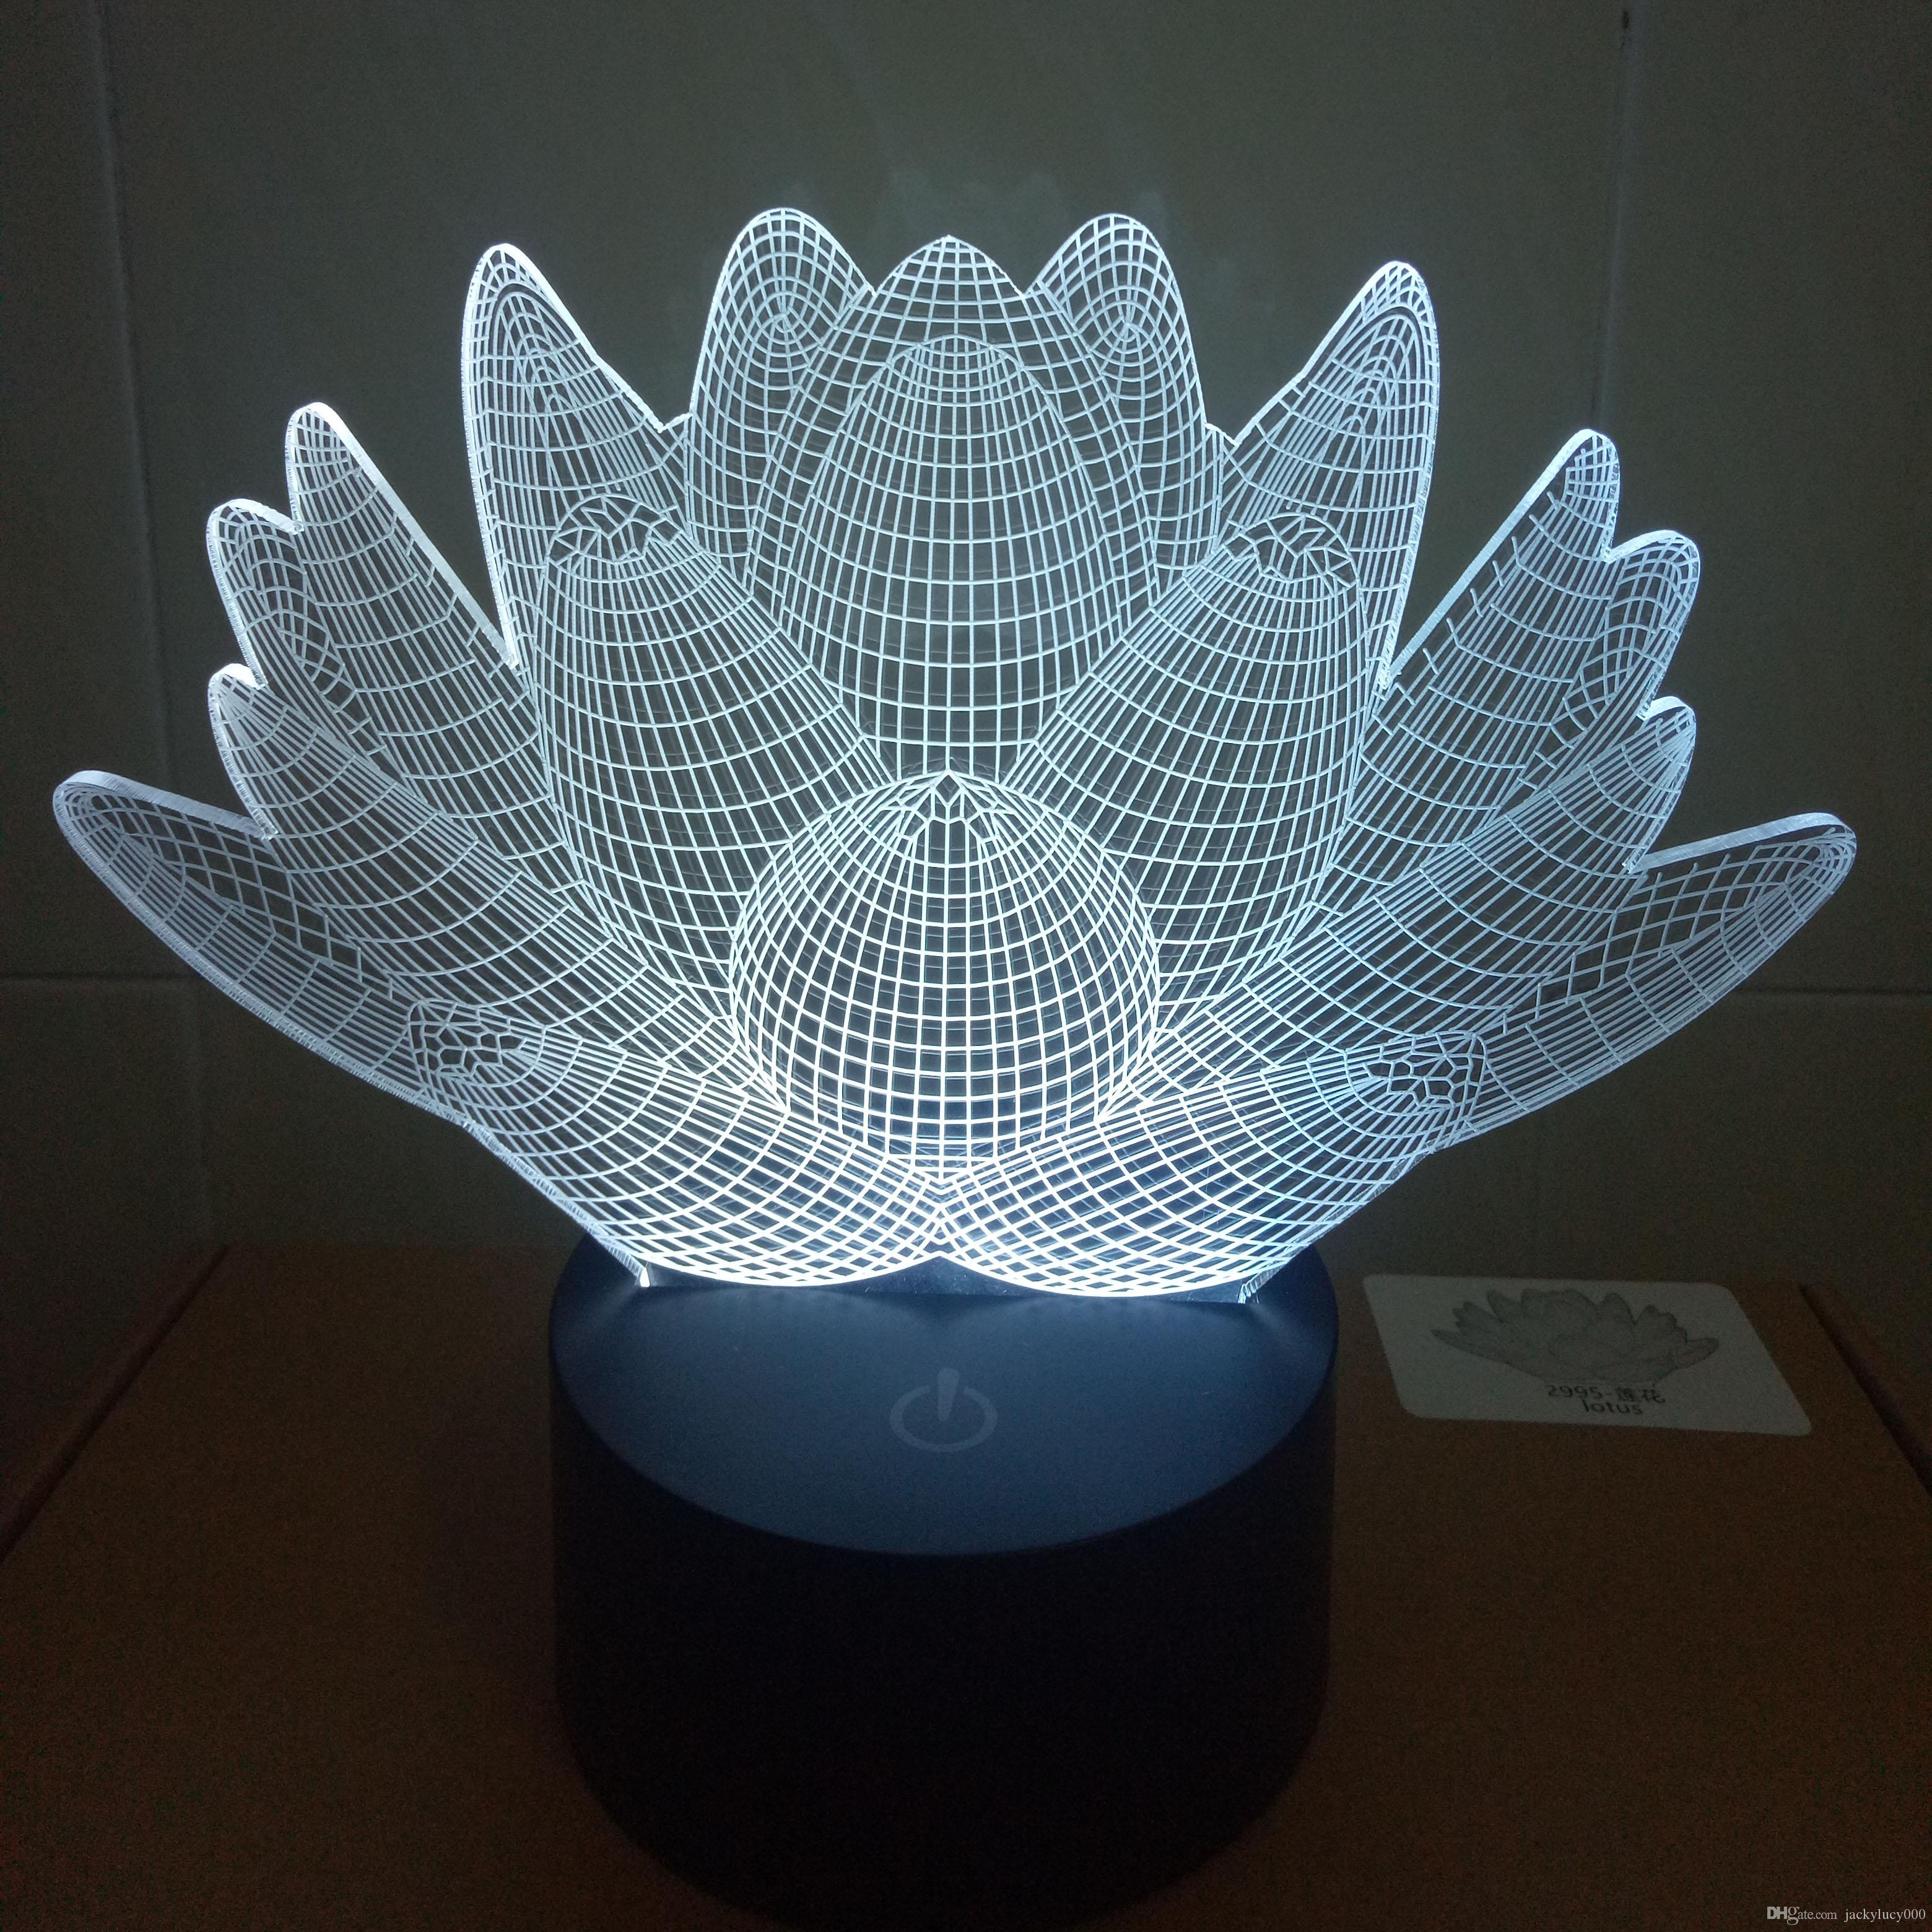 Best quality changed lotus flowers table lamp 3d effect led light best quality changed lotus flowers table lamp 3d effect led light christmas holiday lights for kids decoration birthday wedding decor at cheap price izmirmasajfo